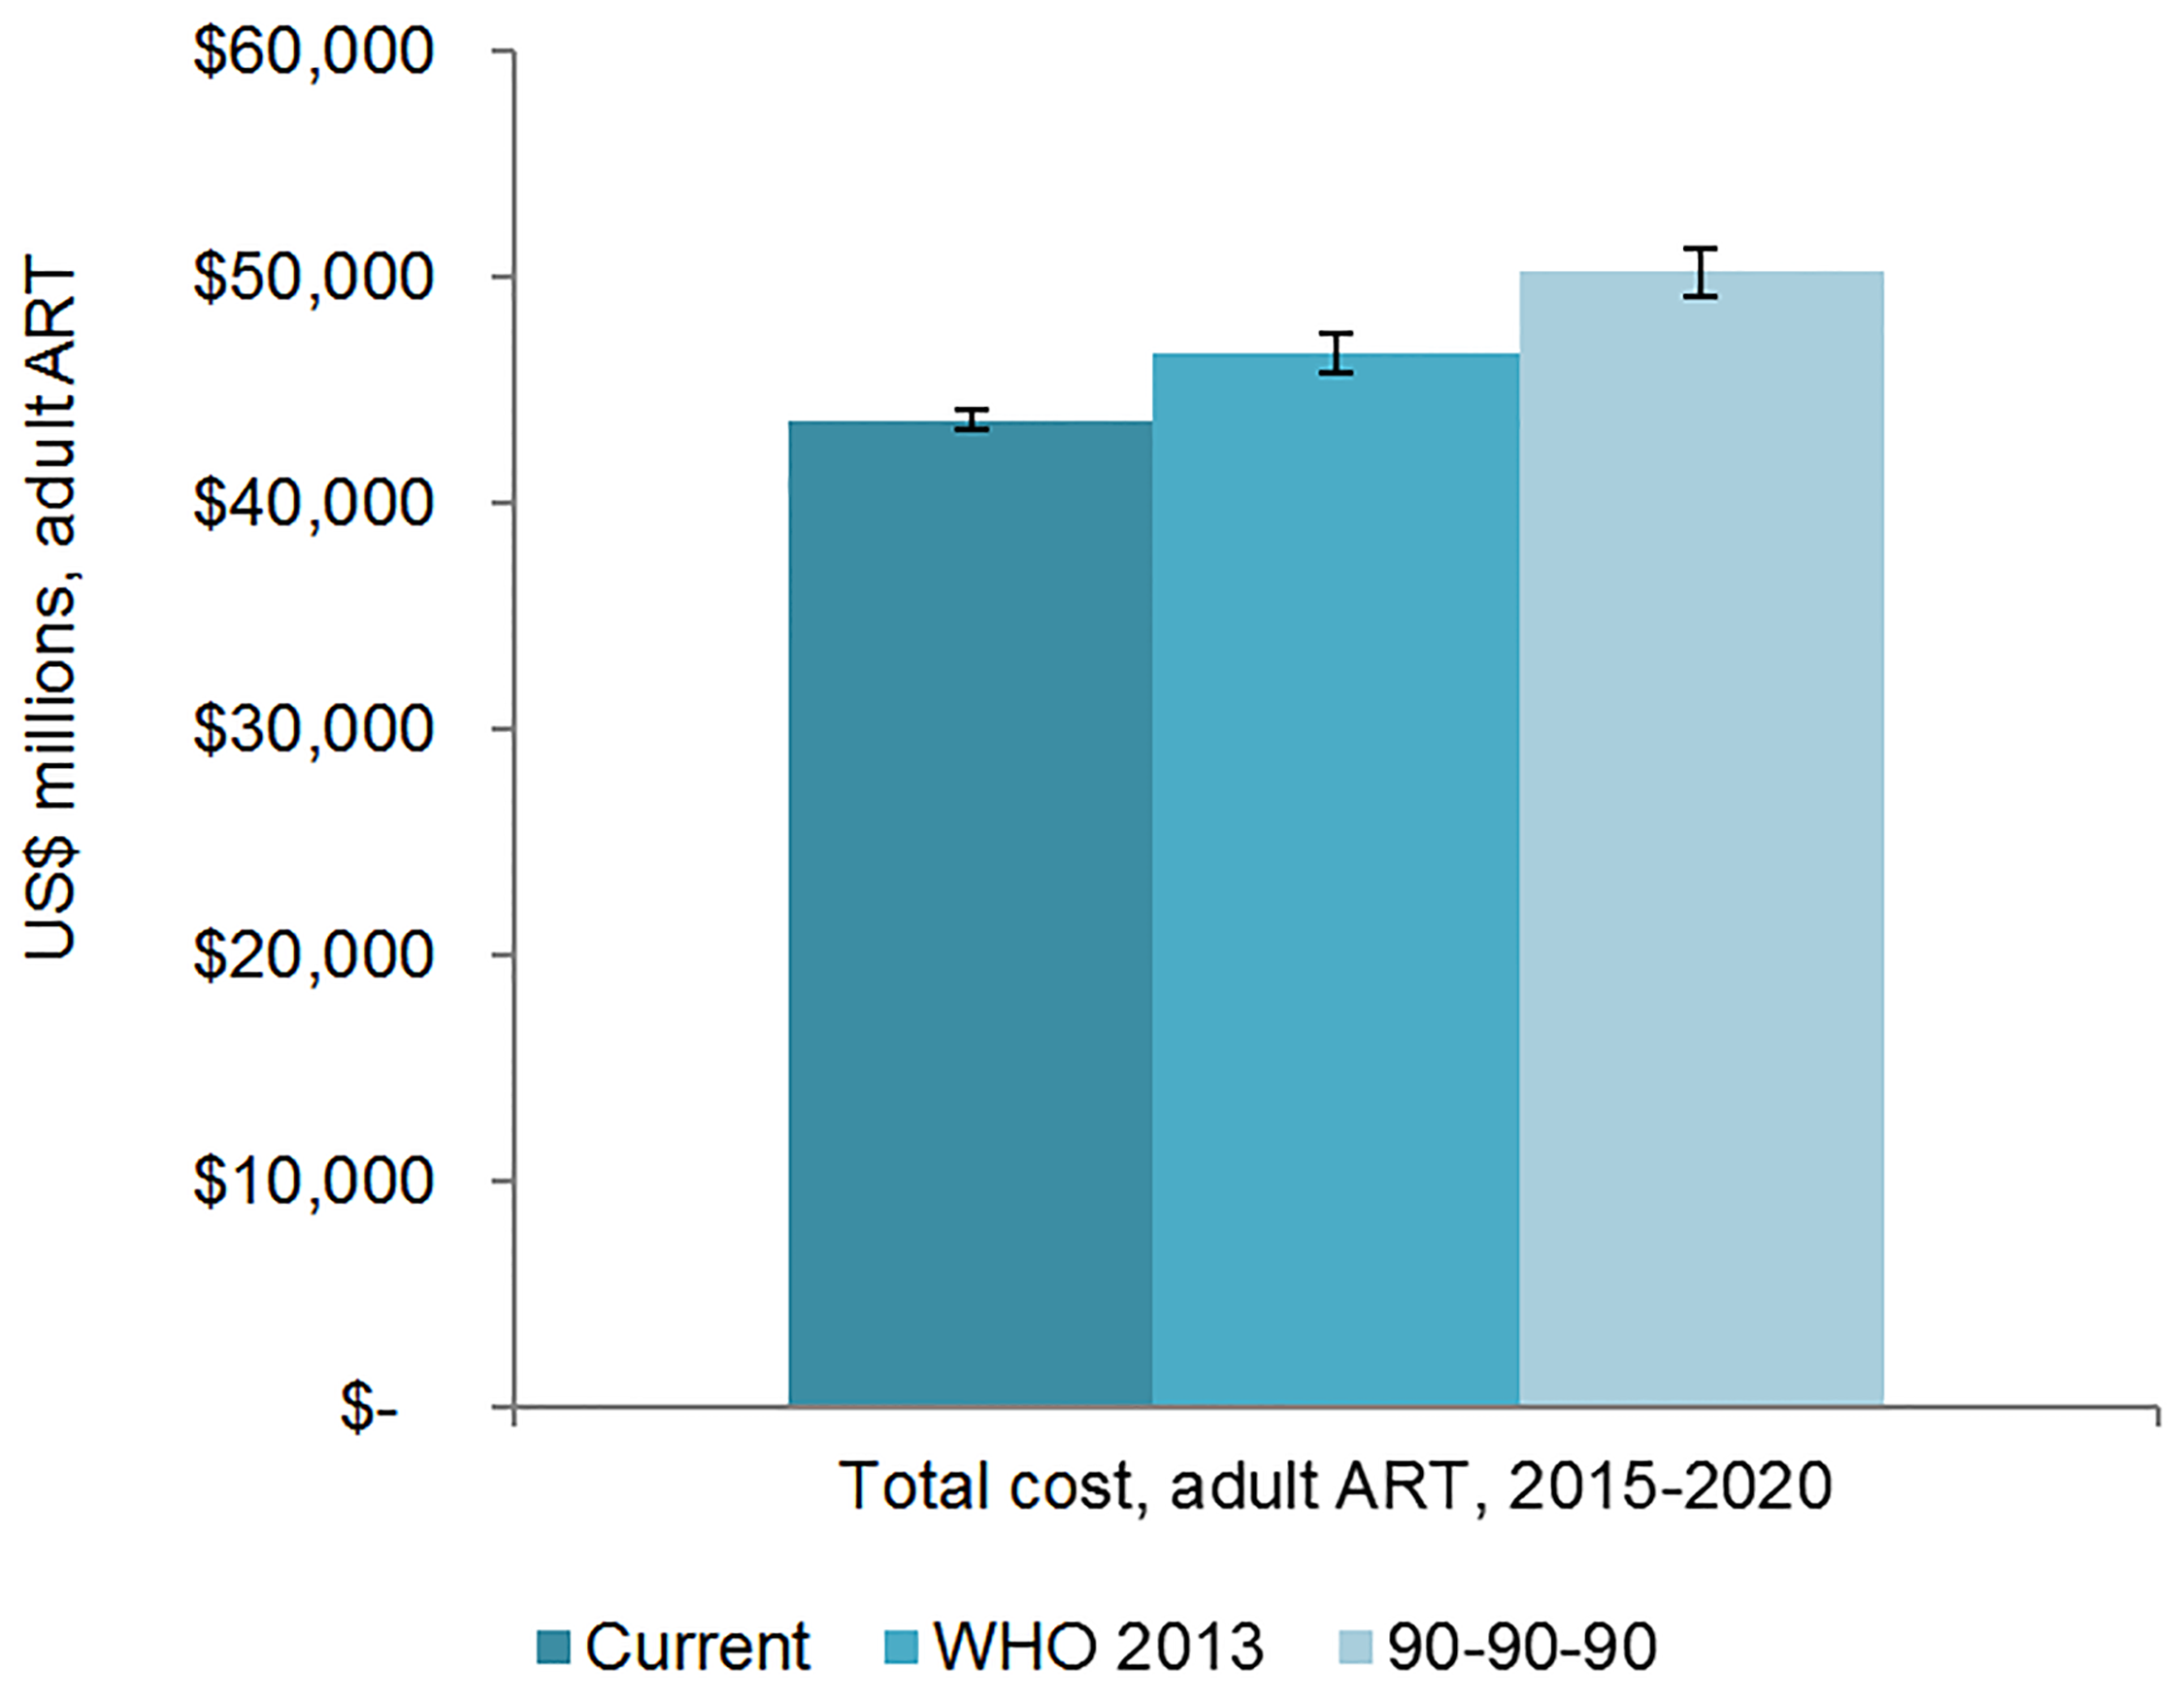 Total adult resource needs for HIV treatment by scenario.